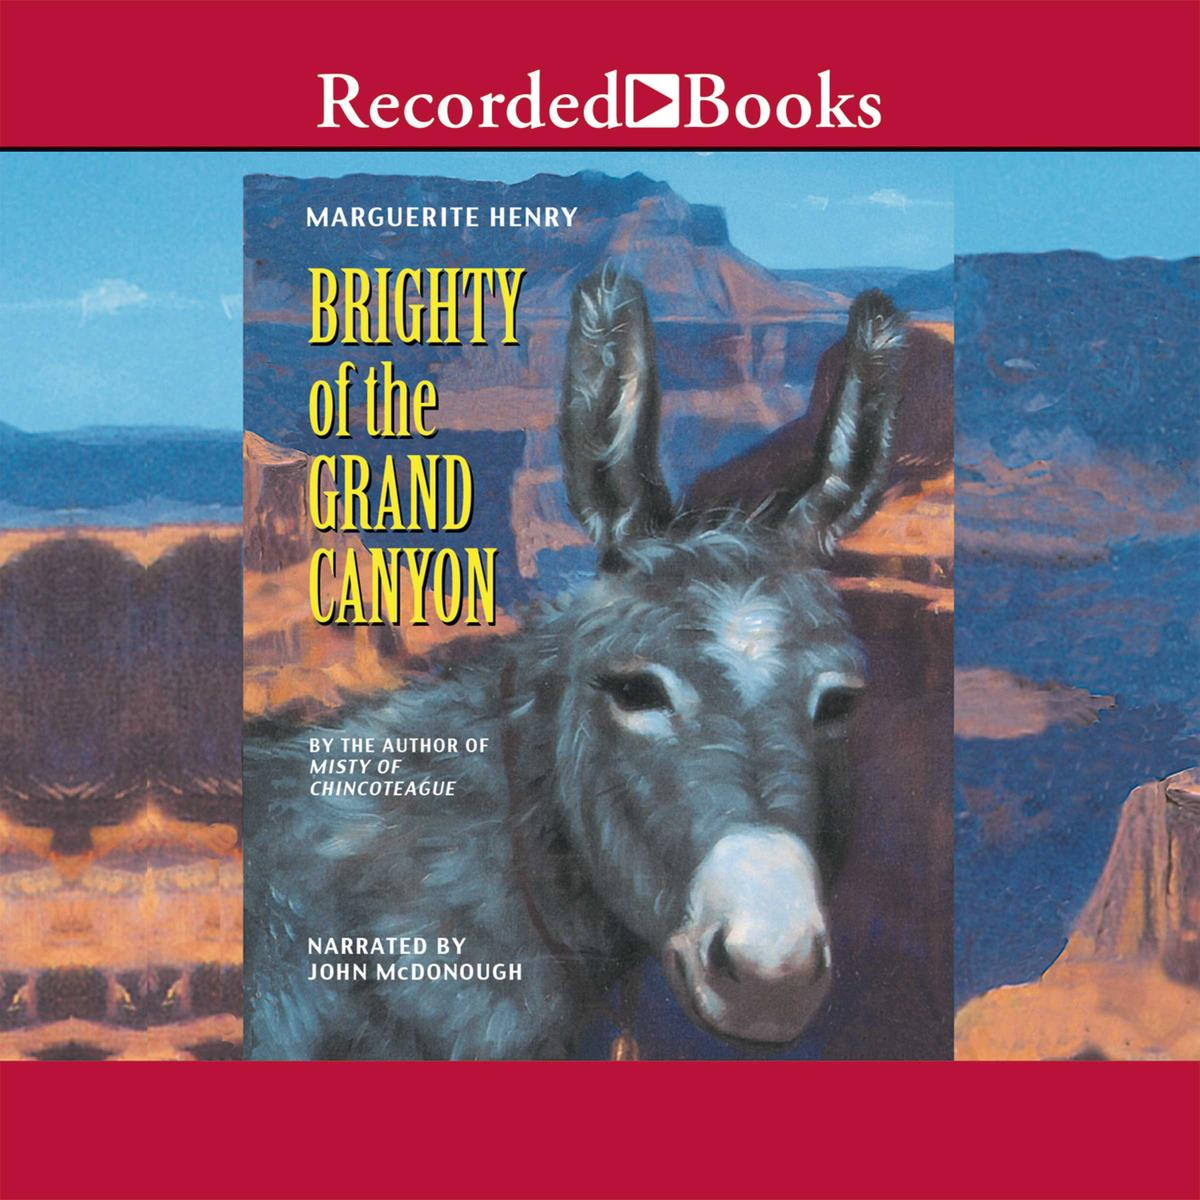 Brighty of the Grand Canyon - Audiobook